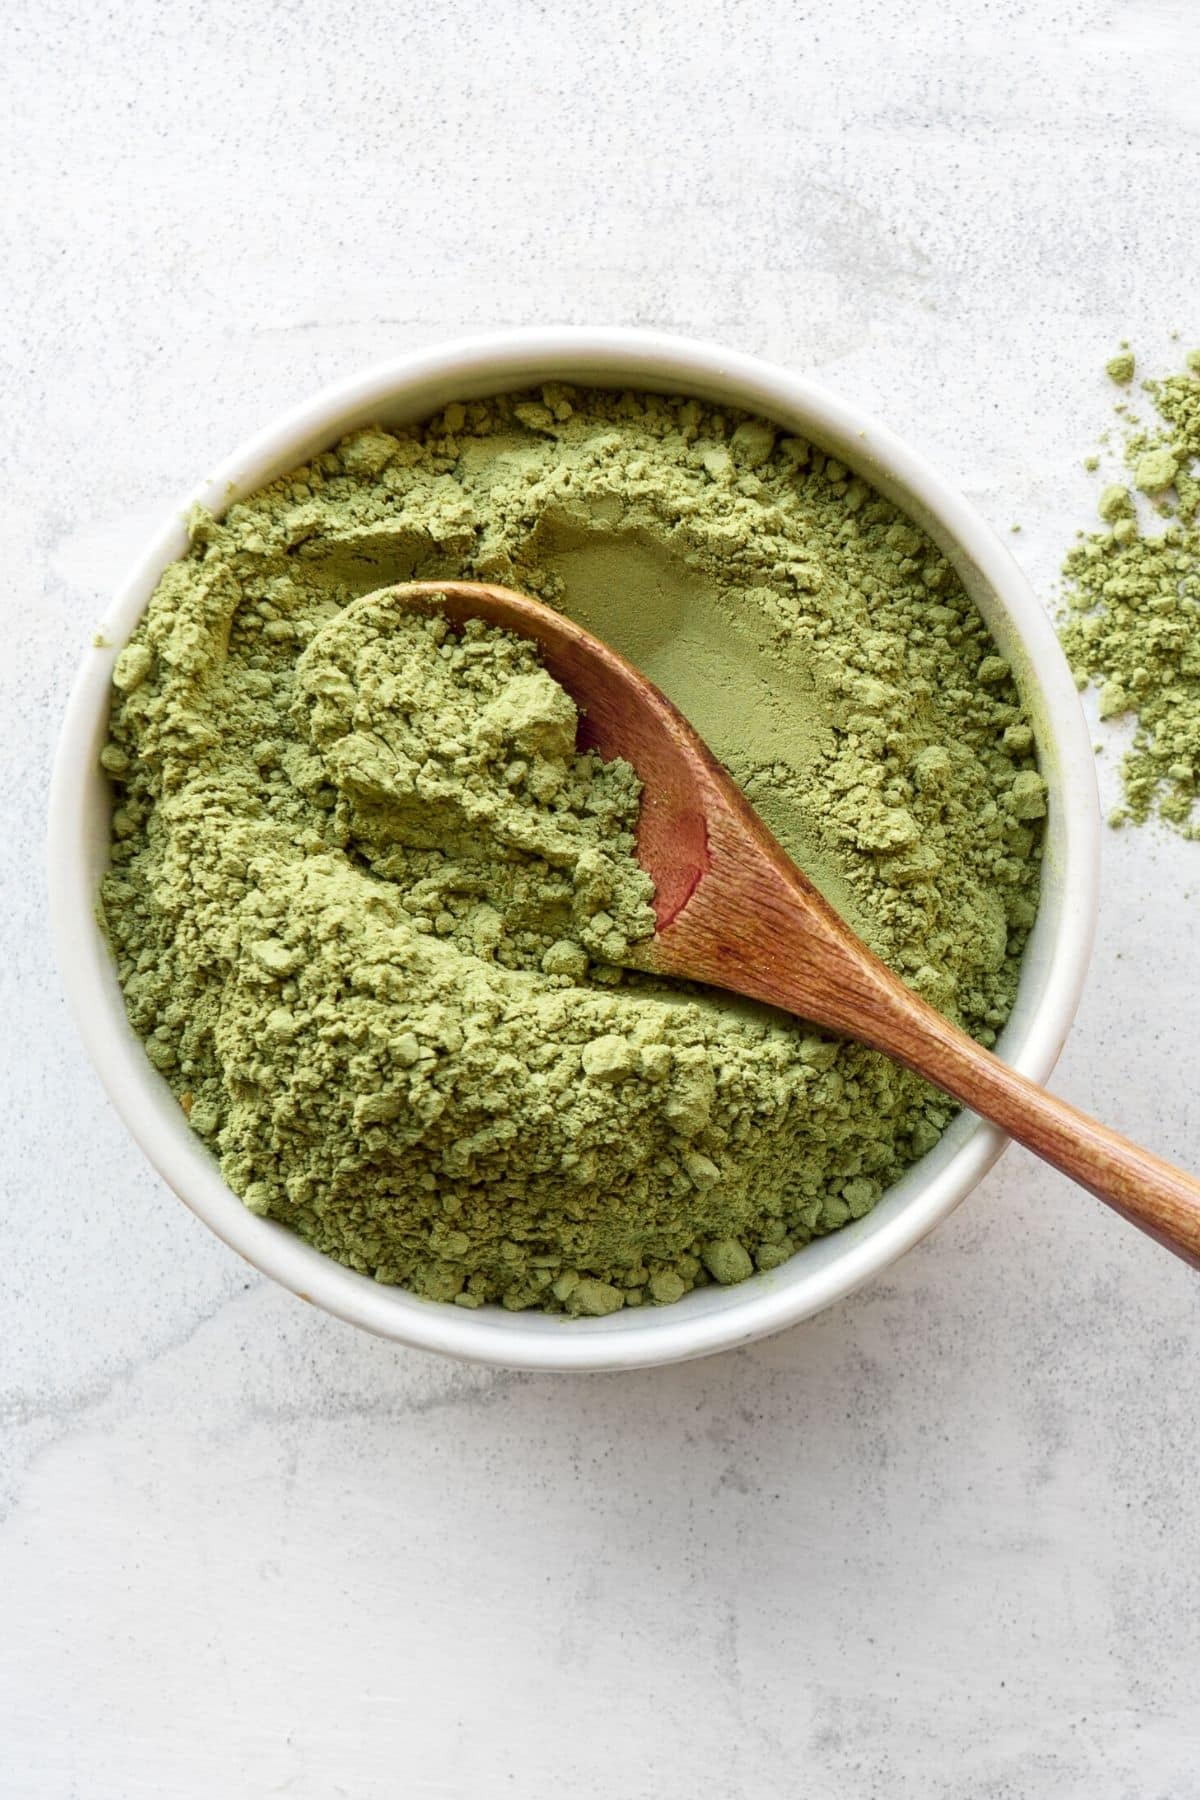 broccoli sprout powder in a bowl